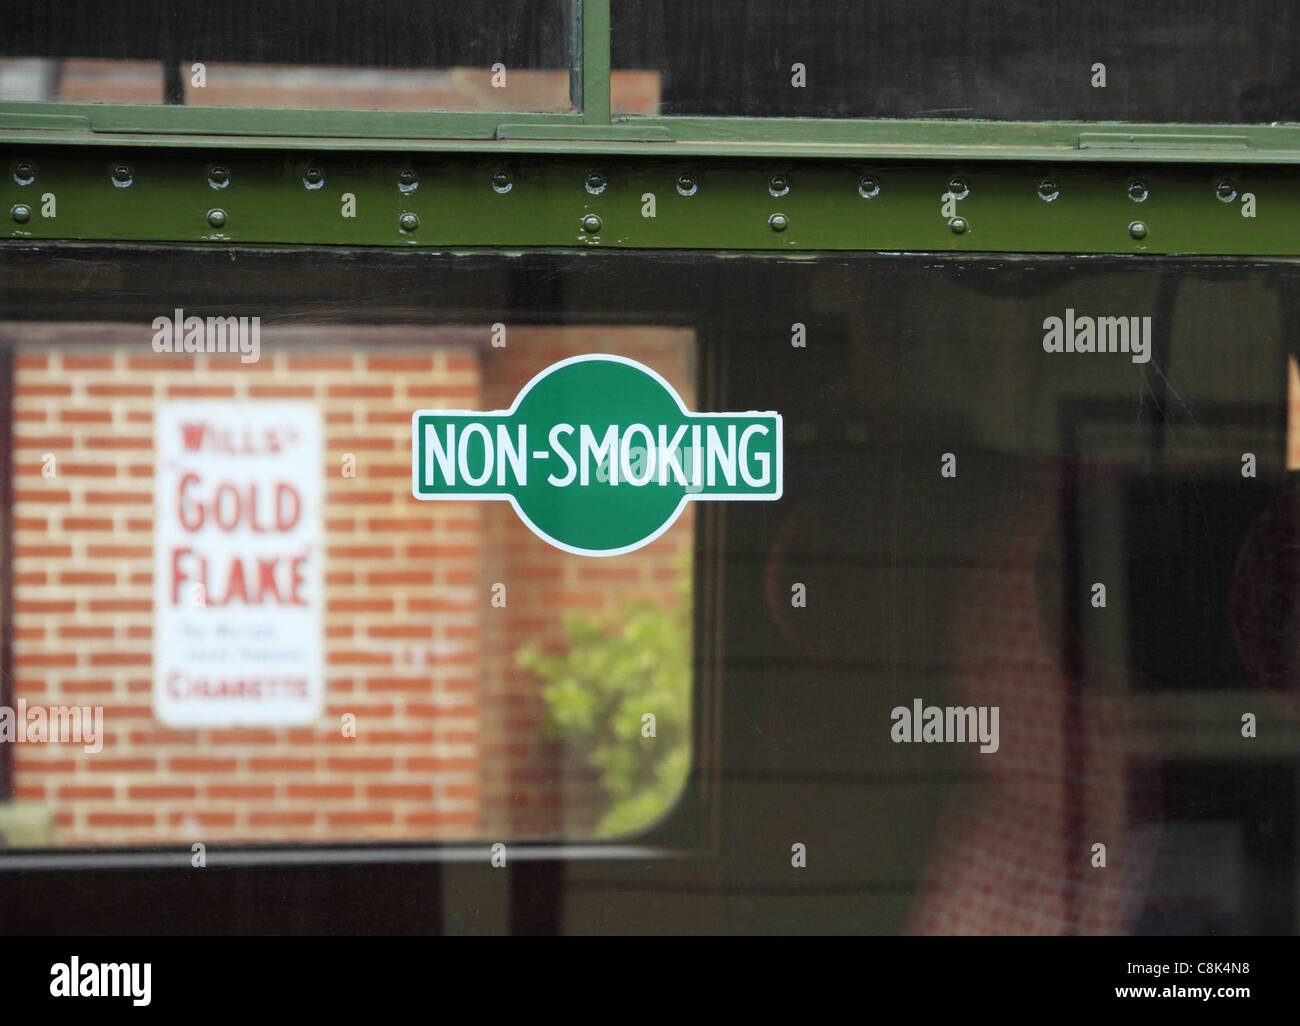 A no smoking sign on a train window juxtaposed with an old cigarette ad at The Bluebell Railway, Sheffield park, - Stock Image